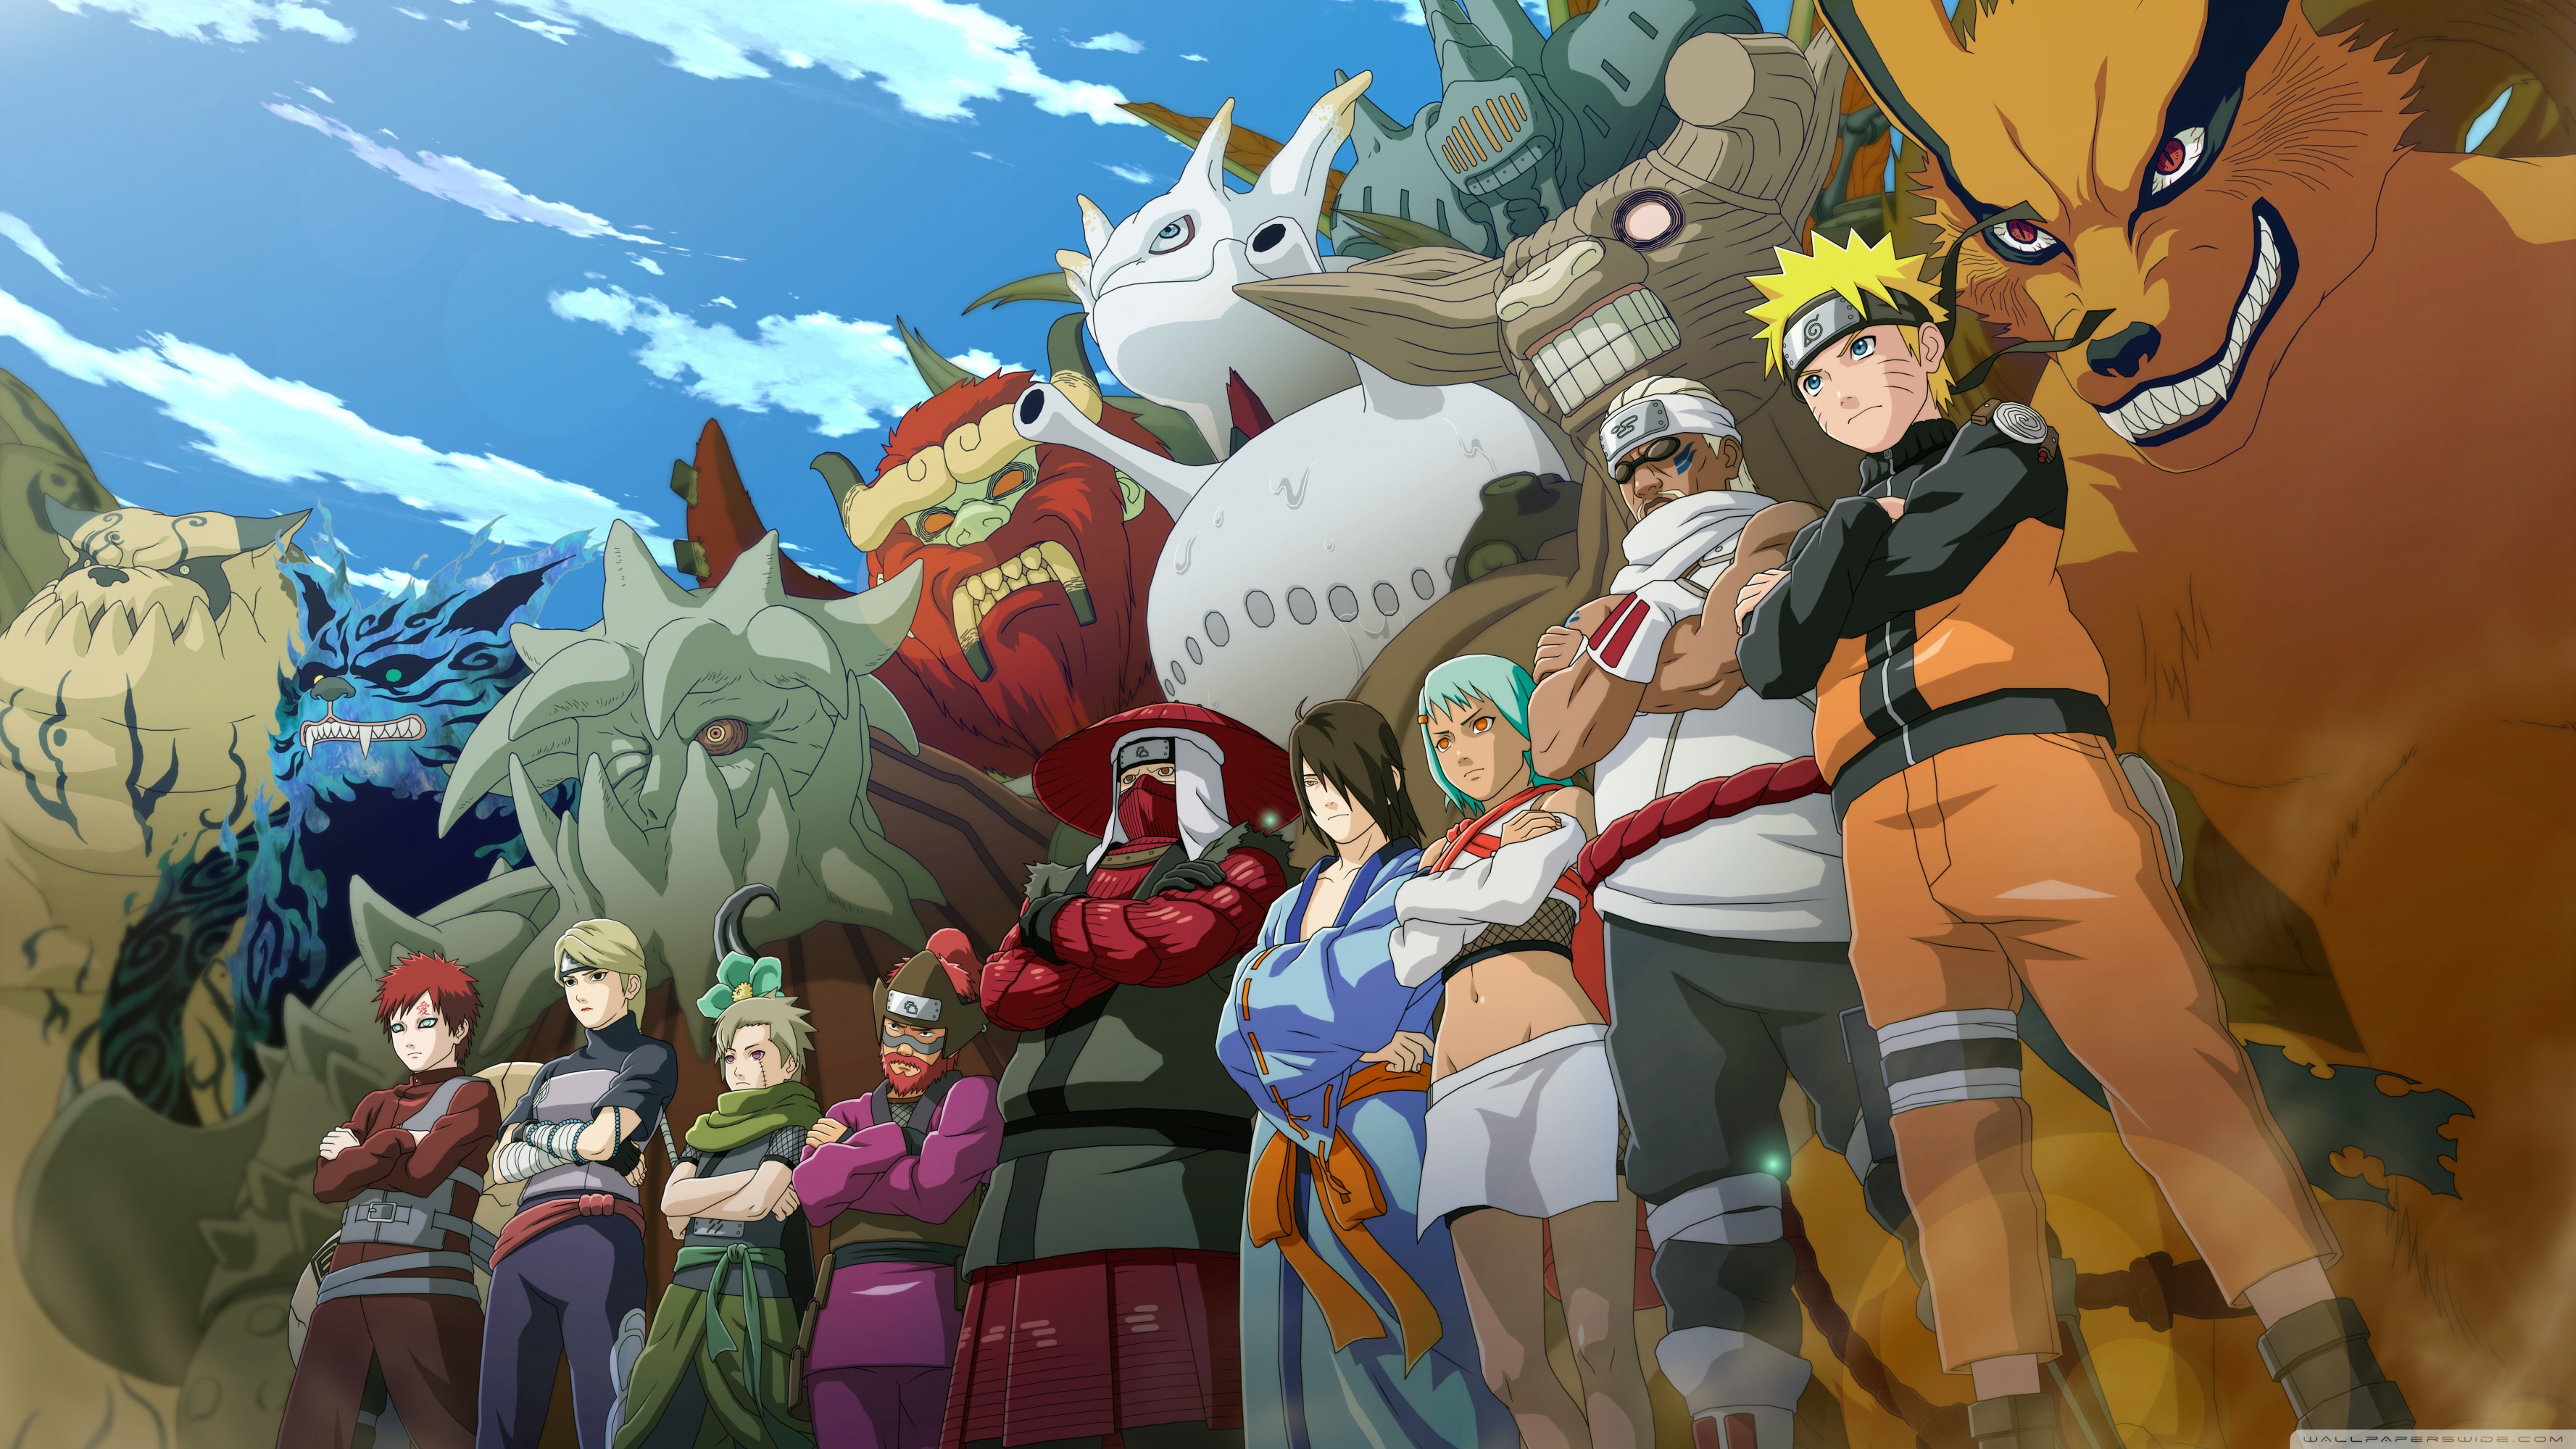 naruto 34 wallpaper